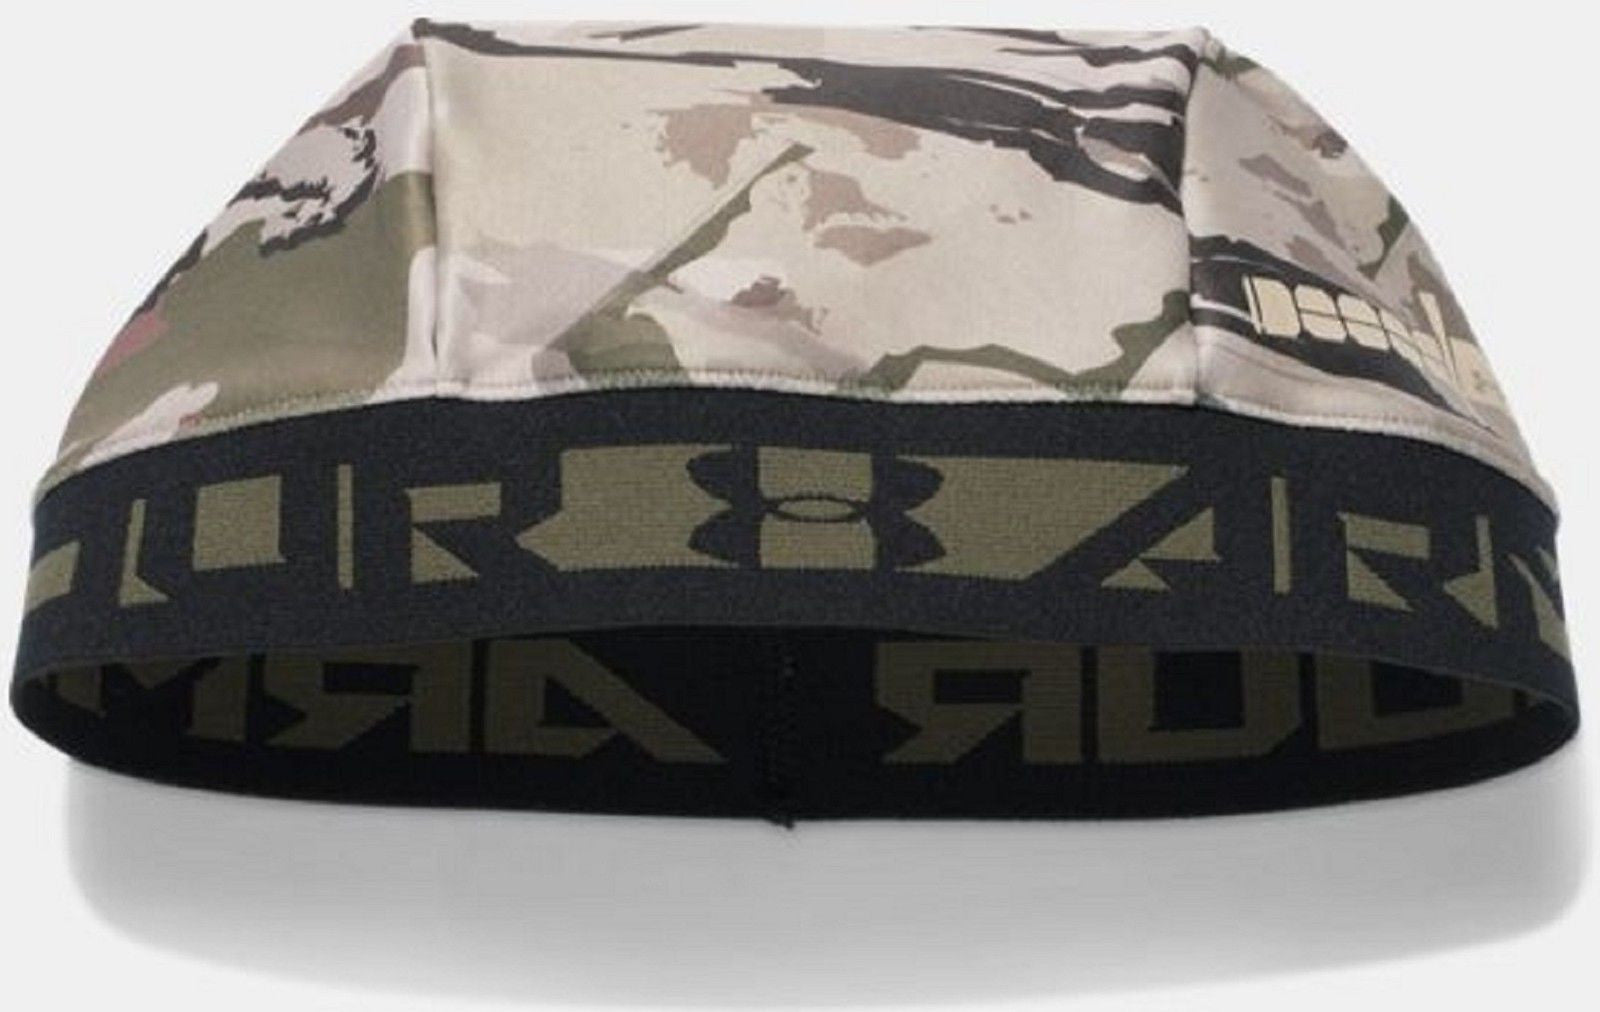 Under Armour CoolSwitch Camouflage Skull Cap Beanie - UA Helmet Liner  Skully Hat Ridge Reaper Barren Black ab0b8a9c02a